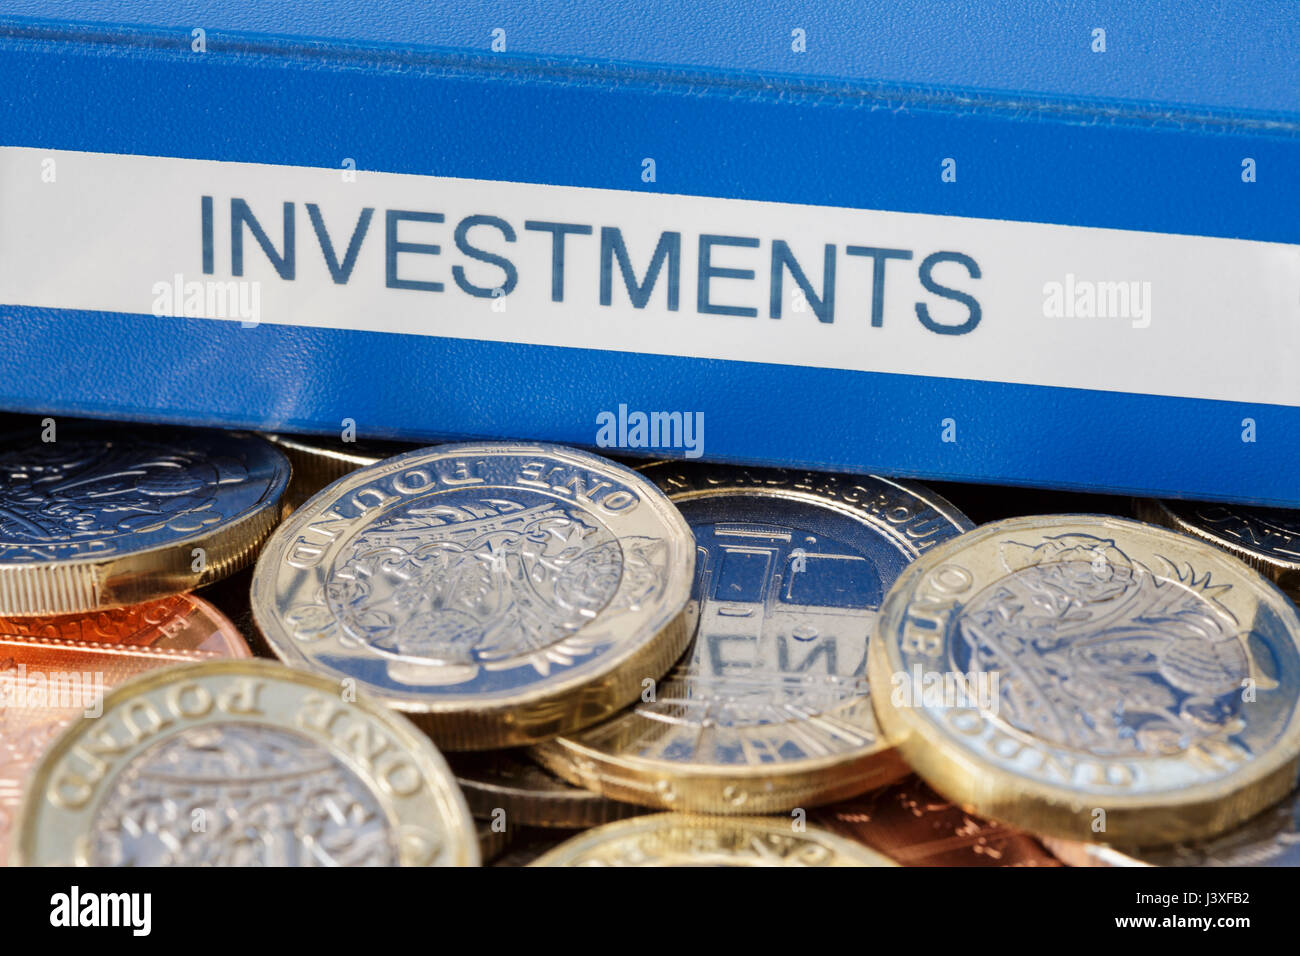 Investments portfolio on English pounds £ sterling money new pound coins GBP cash to illustrate investing and - Stock Image